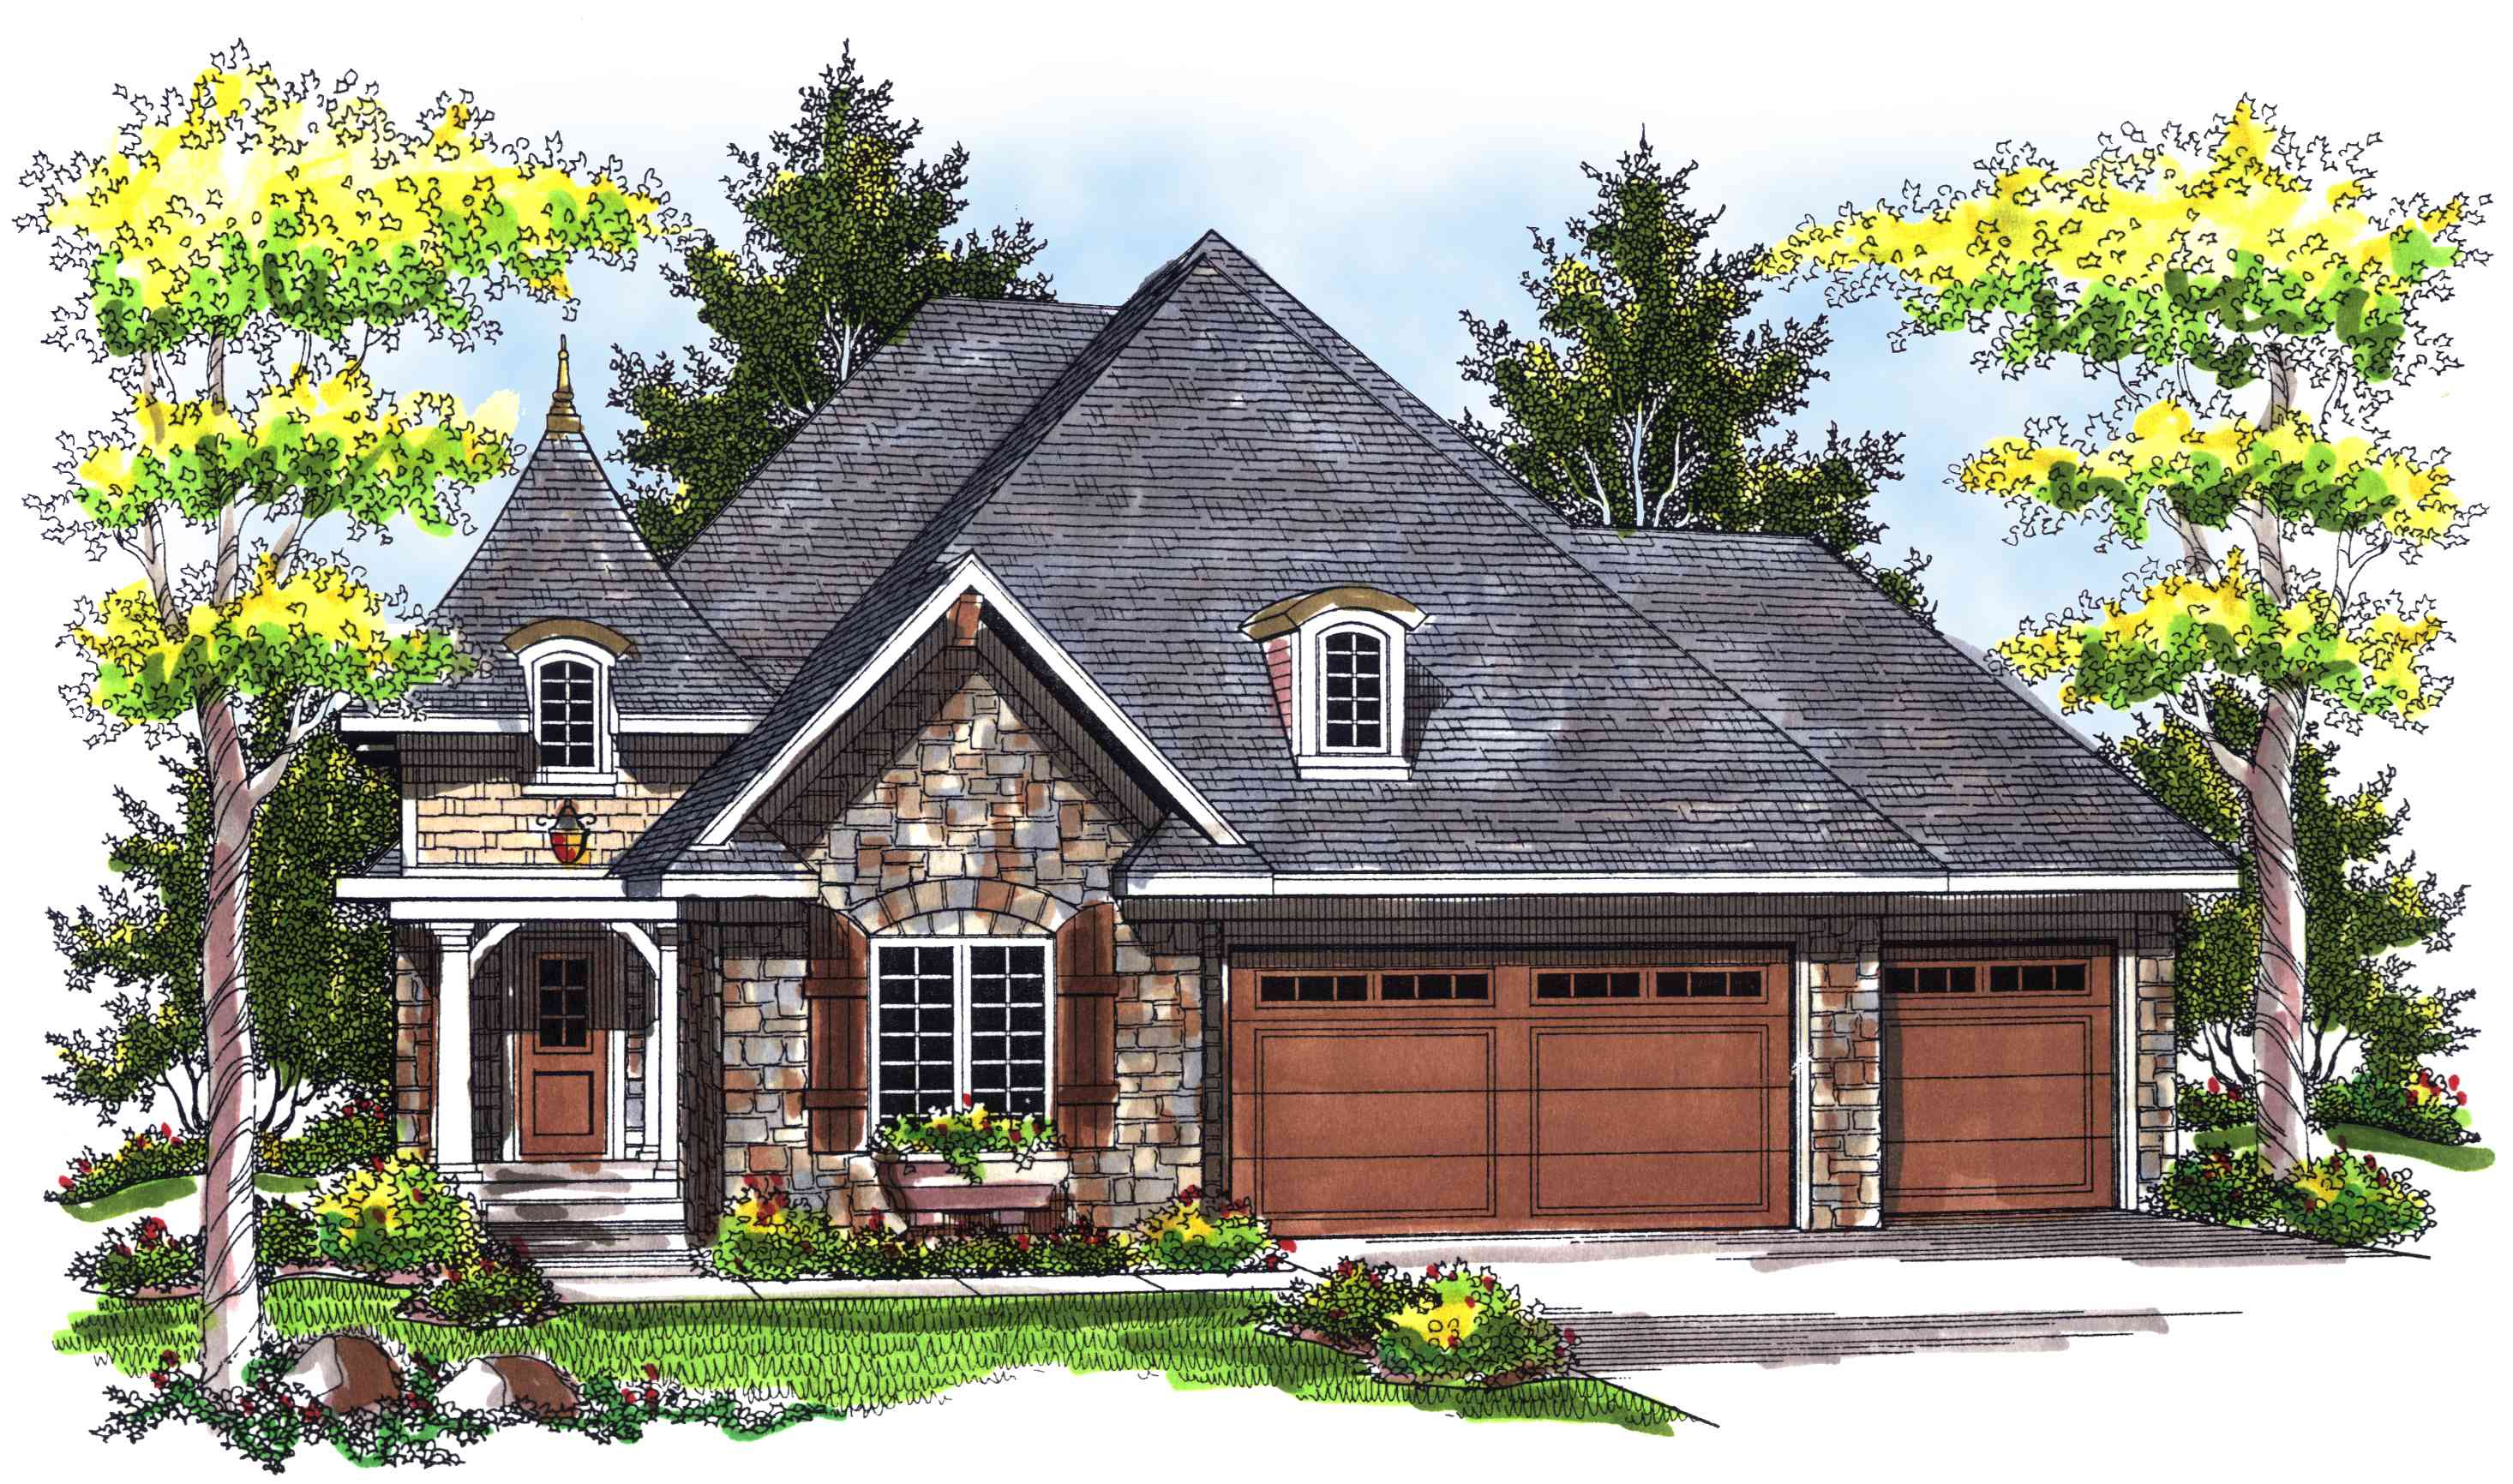 Chateau style ranch 89302ah architectural designs for Chateau style house plans